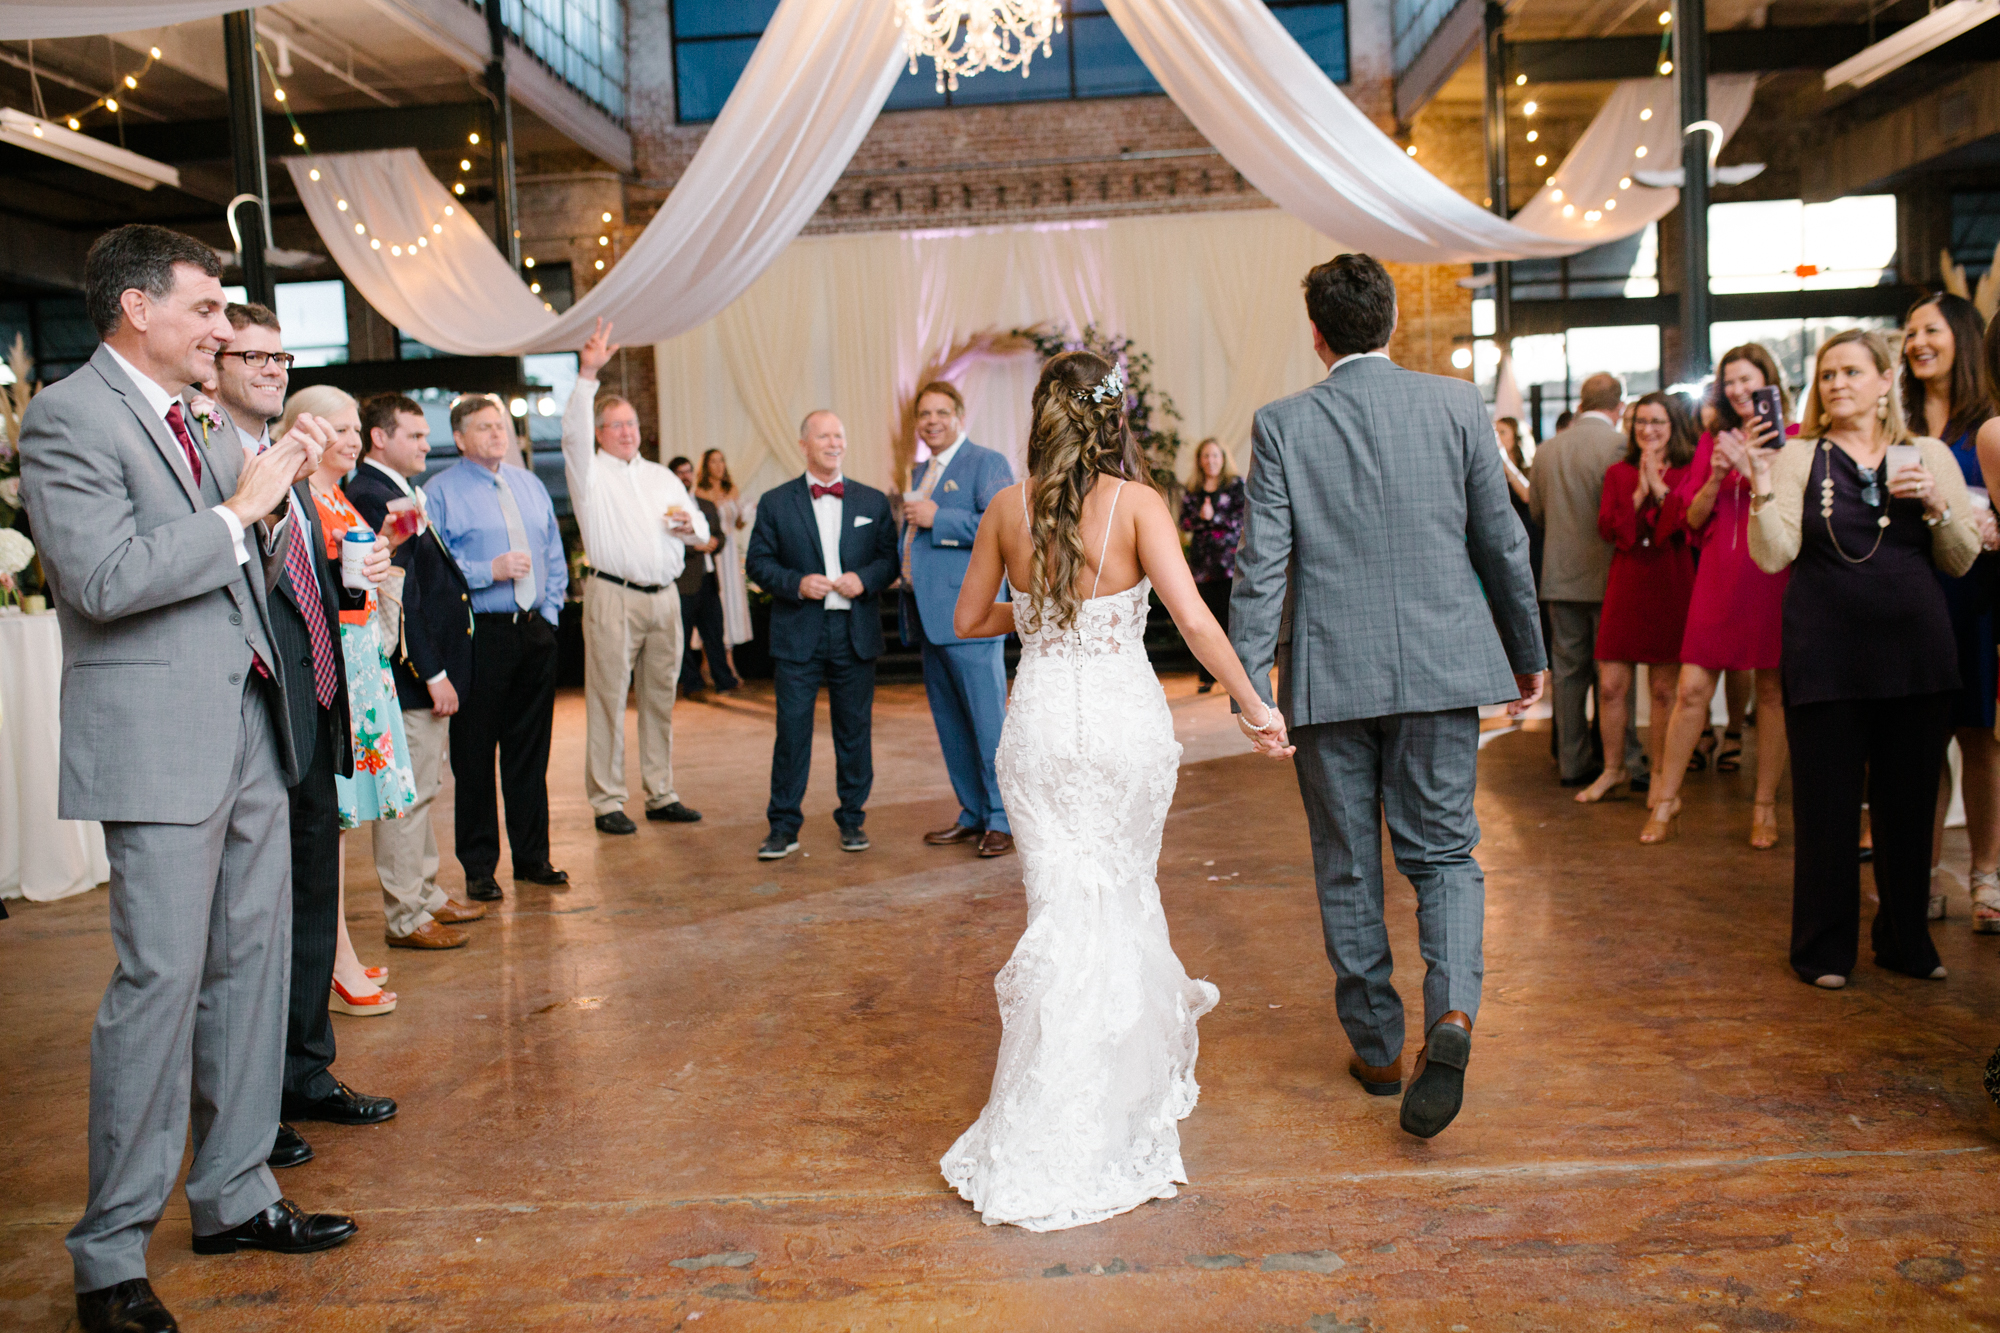 Gulfport_Wedding_Photographer-82.jpg